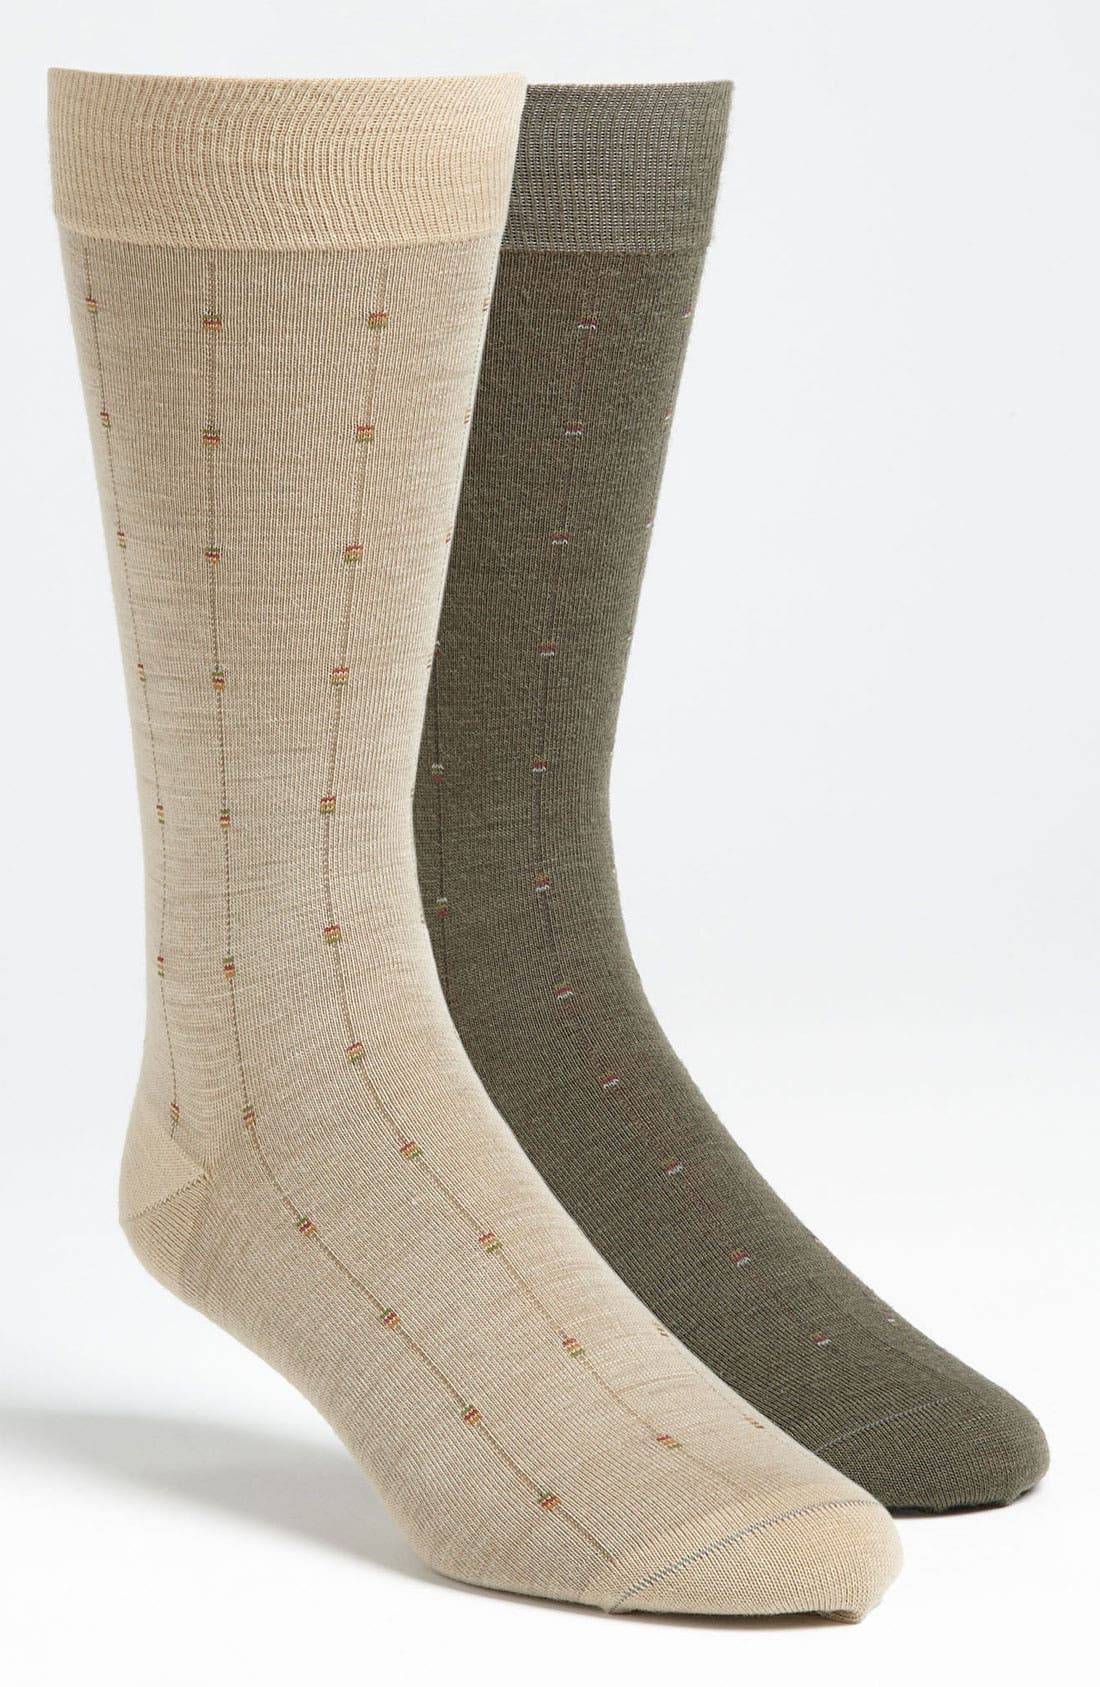 Alternate Image 1 Selected - Pantherella 'Bellringer' Socks (2-Pack)